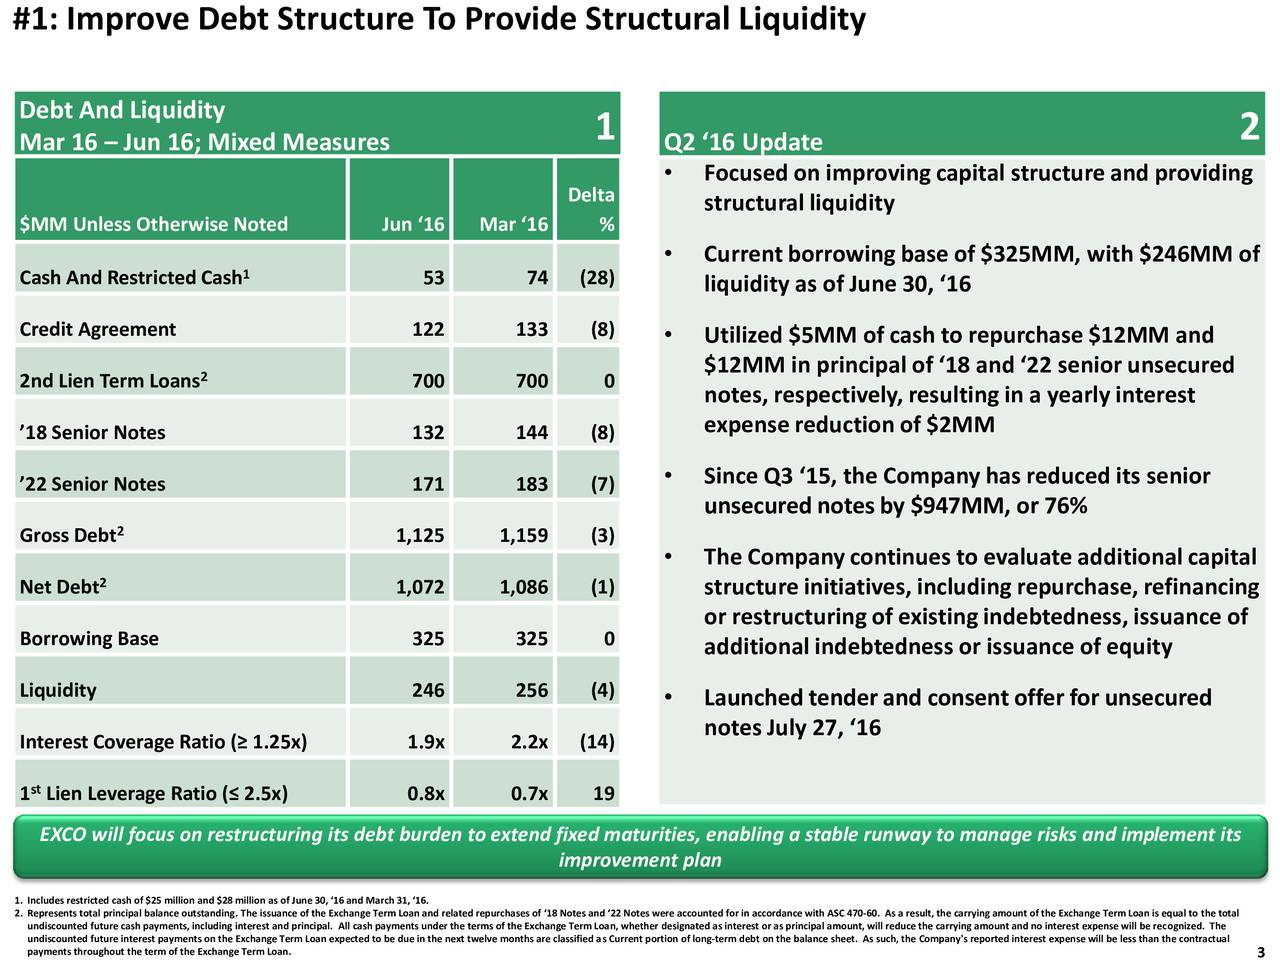 Debt And Liquidity 1 2 Mar 16  Jun 16; Mixed Measures Q2 16 Update Focusedon improving capital structureand providing Delta structural liquidity $MM Unless Otherwise Noted Jun 16 Mar 16 % 1  Currentborrowingbase of $325MM, with $246MM of Cash And Restricted Cash 53 74 (28) liquidity as of June 30, 16 Credit Agreement 122 133 (8)  Utilized $5MM of cash to repurchase$12MM and 2nd Lien Term Loans2 700 700 0 $12MM in principal of 18 and 22 senior unsecured notes, respectively, resulting in a yearly interest expensereduction of $2MM 18 Senior Notes 132 144 (8) 22 Senior Notes 171 183 (7)  Since Q3 15, the Company has reduced its senior unsecurednotesby $947MM, or 76% Gross Debt2 1,125 1,159 (3) The Companycontinues to evaluateadditionalcapital 2 Net Debt 1,072 1,086 (1) structureinitiatives, including repurchase,refinancing or restructuringof existing indebtedness,issuance of Borrowing Base 325 325 0 additional indebtedness or issuance of equity Liquidity 246 256 (4) Launchedtenderand consentoffer for unsecured notes July 27, 16 Interest Coverage Ratio ( 1.25x) 1.9x 2.2x (14) 1 Lien Leverage Ratio ( 2.5x) 0.8x 0.7x 19 EXCO will focus on restructuring its debt burden to extend fixed maturities, enabling a stable runway to manage risks and implement its improvement plan 1. Includes restricted cash of $25 million and $28 million as of June 30, 16 and March 31, 16. 2. Represents total principal balance outstanding. The issuance of the Exchange Term Loan and related repurchases of 18 Notes and 22 Notes were accounted for in accordance with ASC 470-60. As a result, the carrying amount of the Exchange Term Loan is equal to the total undiscounted future interest payments on the Exchange Term Loan expected to be due in the next twelve months are classified as Current portion of long-term debt on the balance sheet. As such, the Company's reported interest expense will be less than the contractual